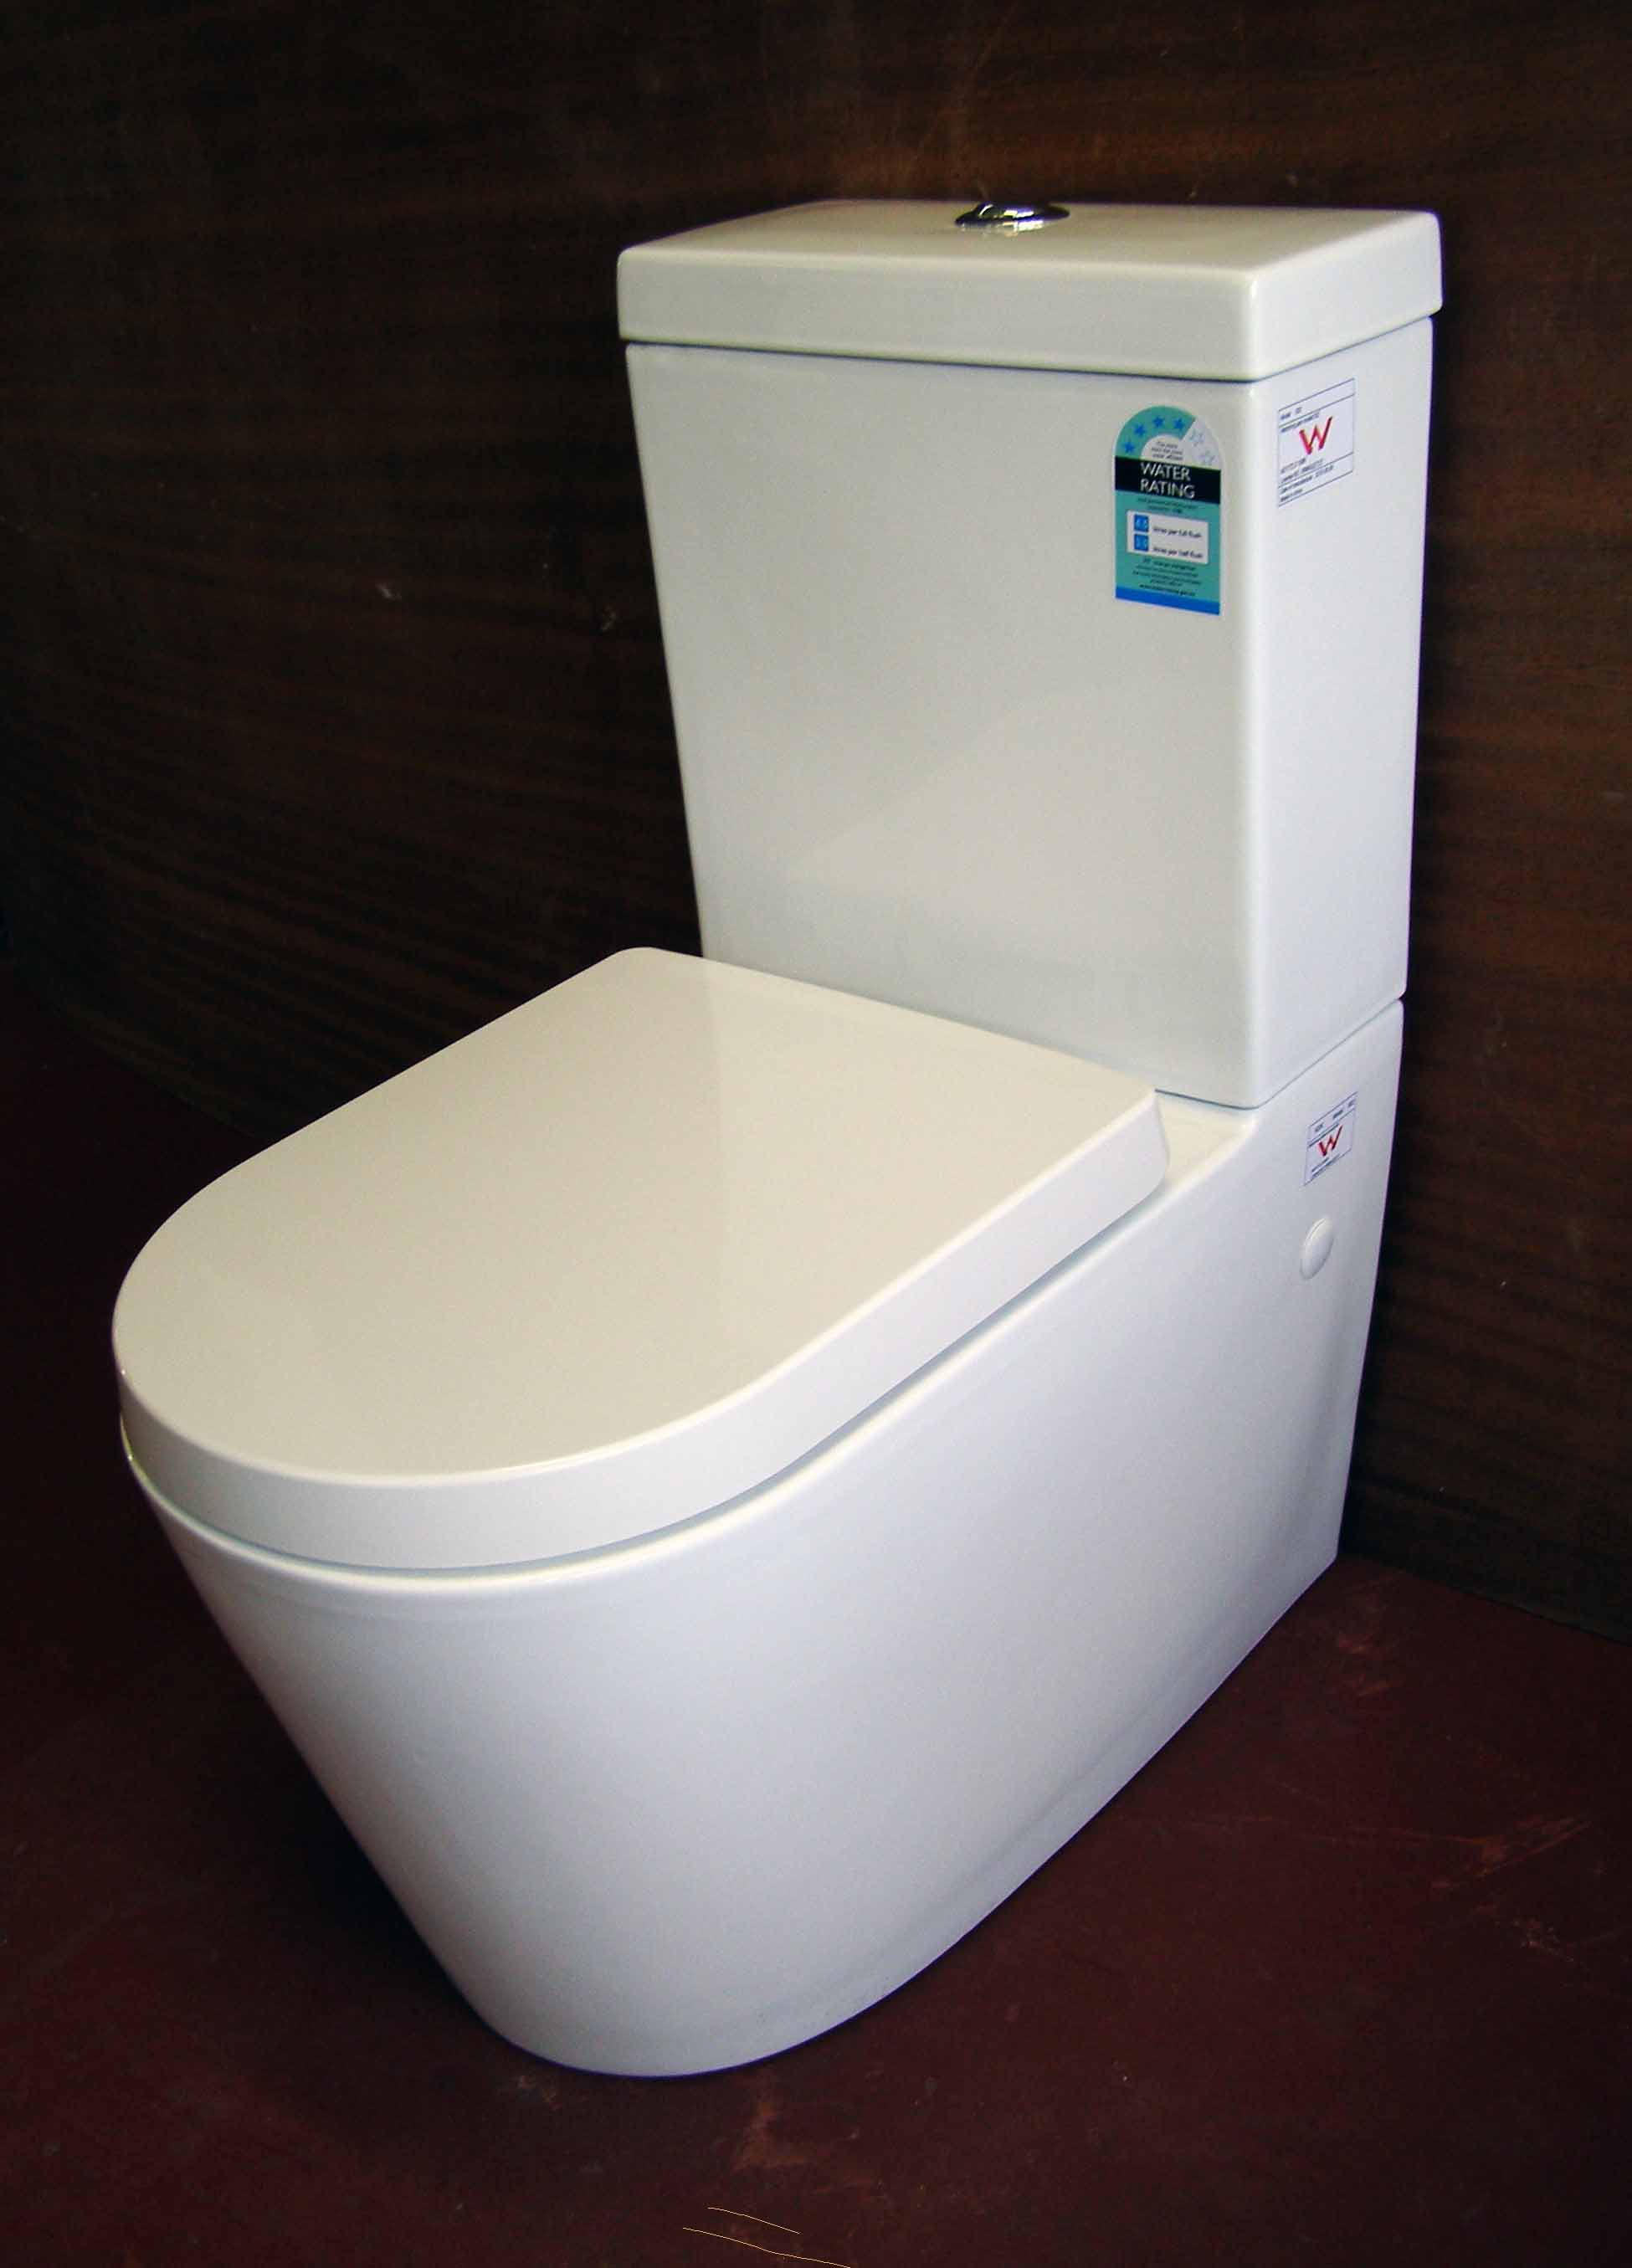 Seat Covers Sydney Apollo 02 Wall Faced S Trap Toilet Suite With Soft Close